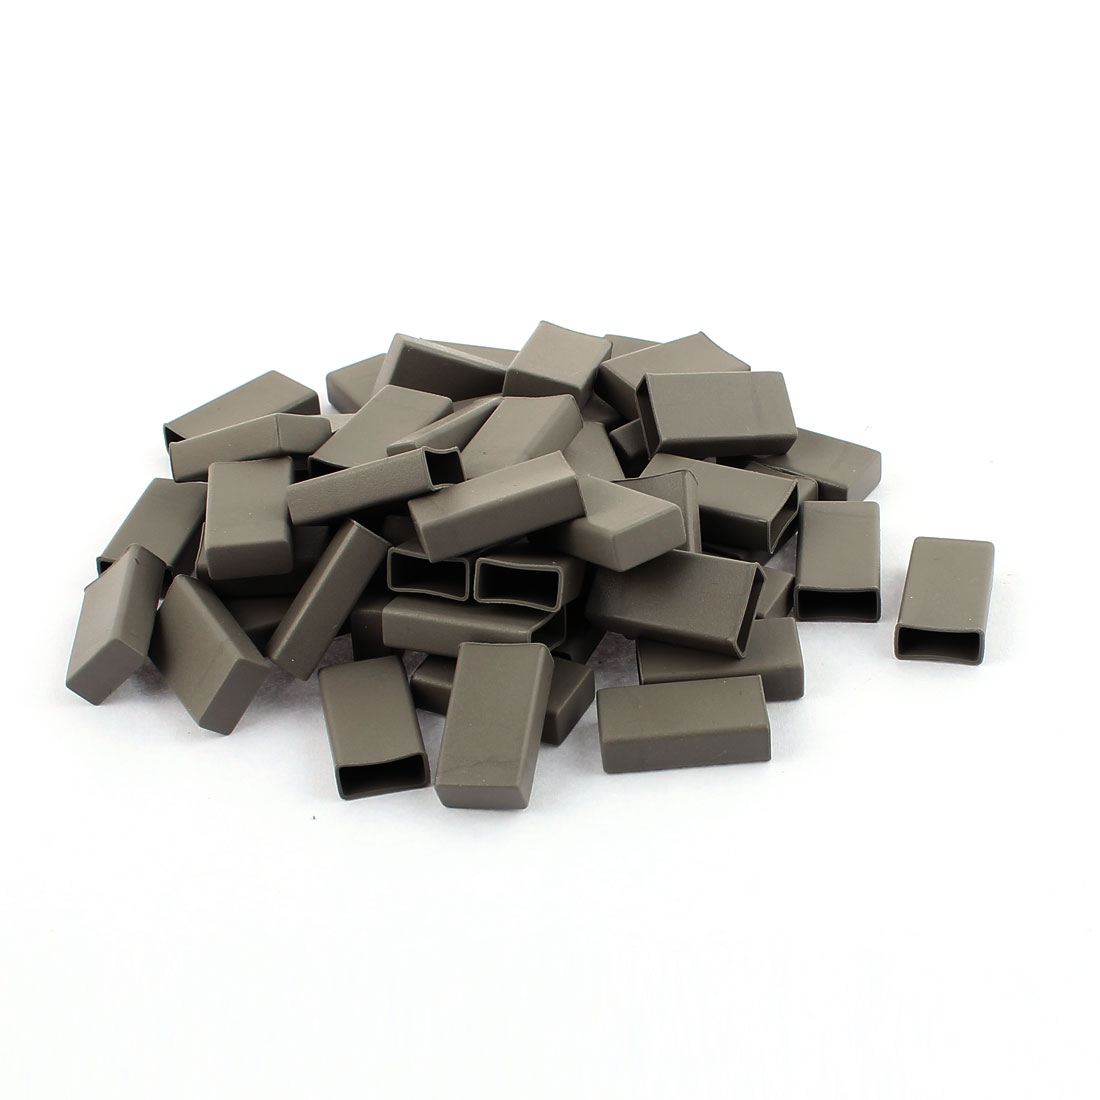 52 Pcs Thermal Conduction Transistor Silicon Boot Cap TO-220A Insulation